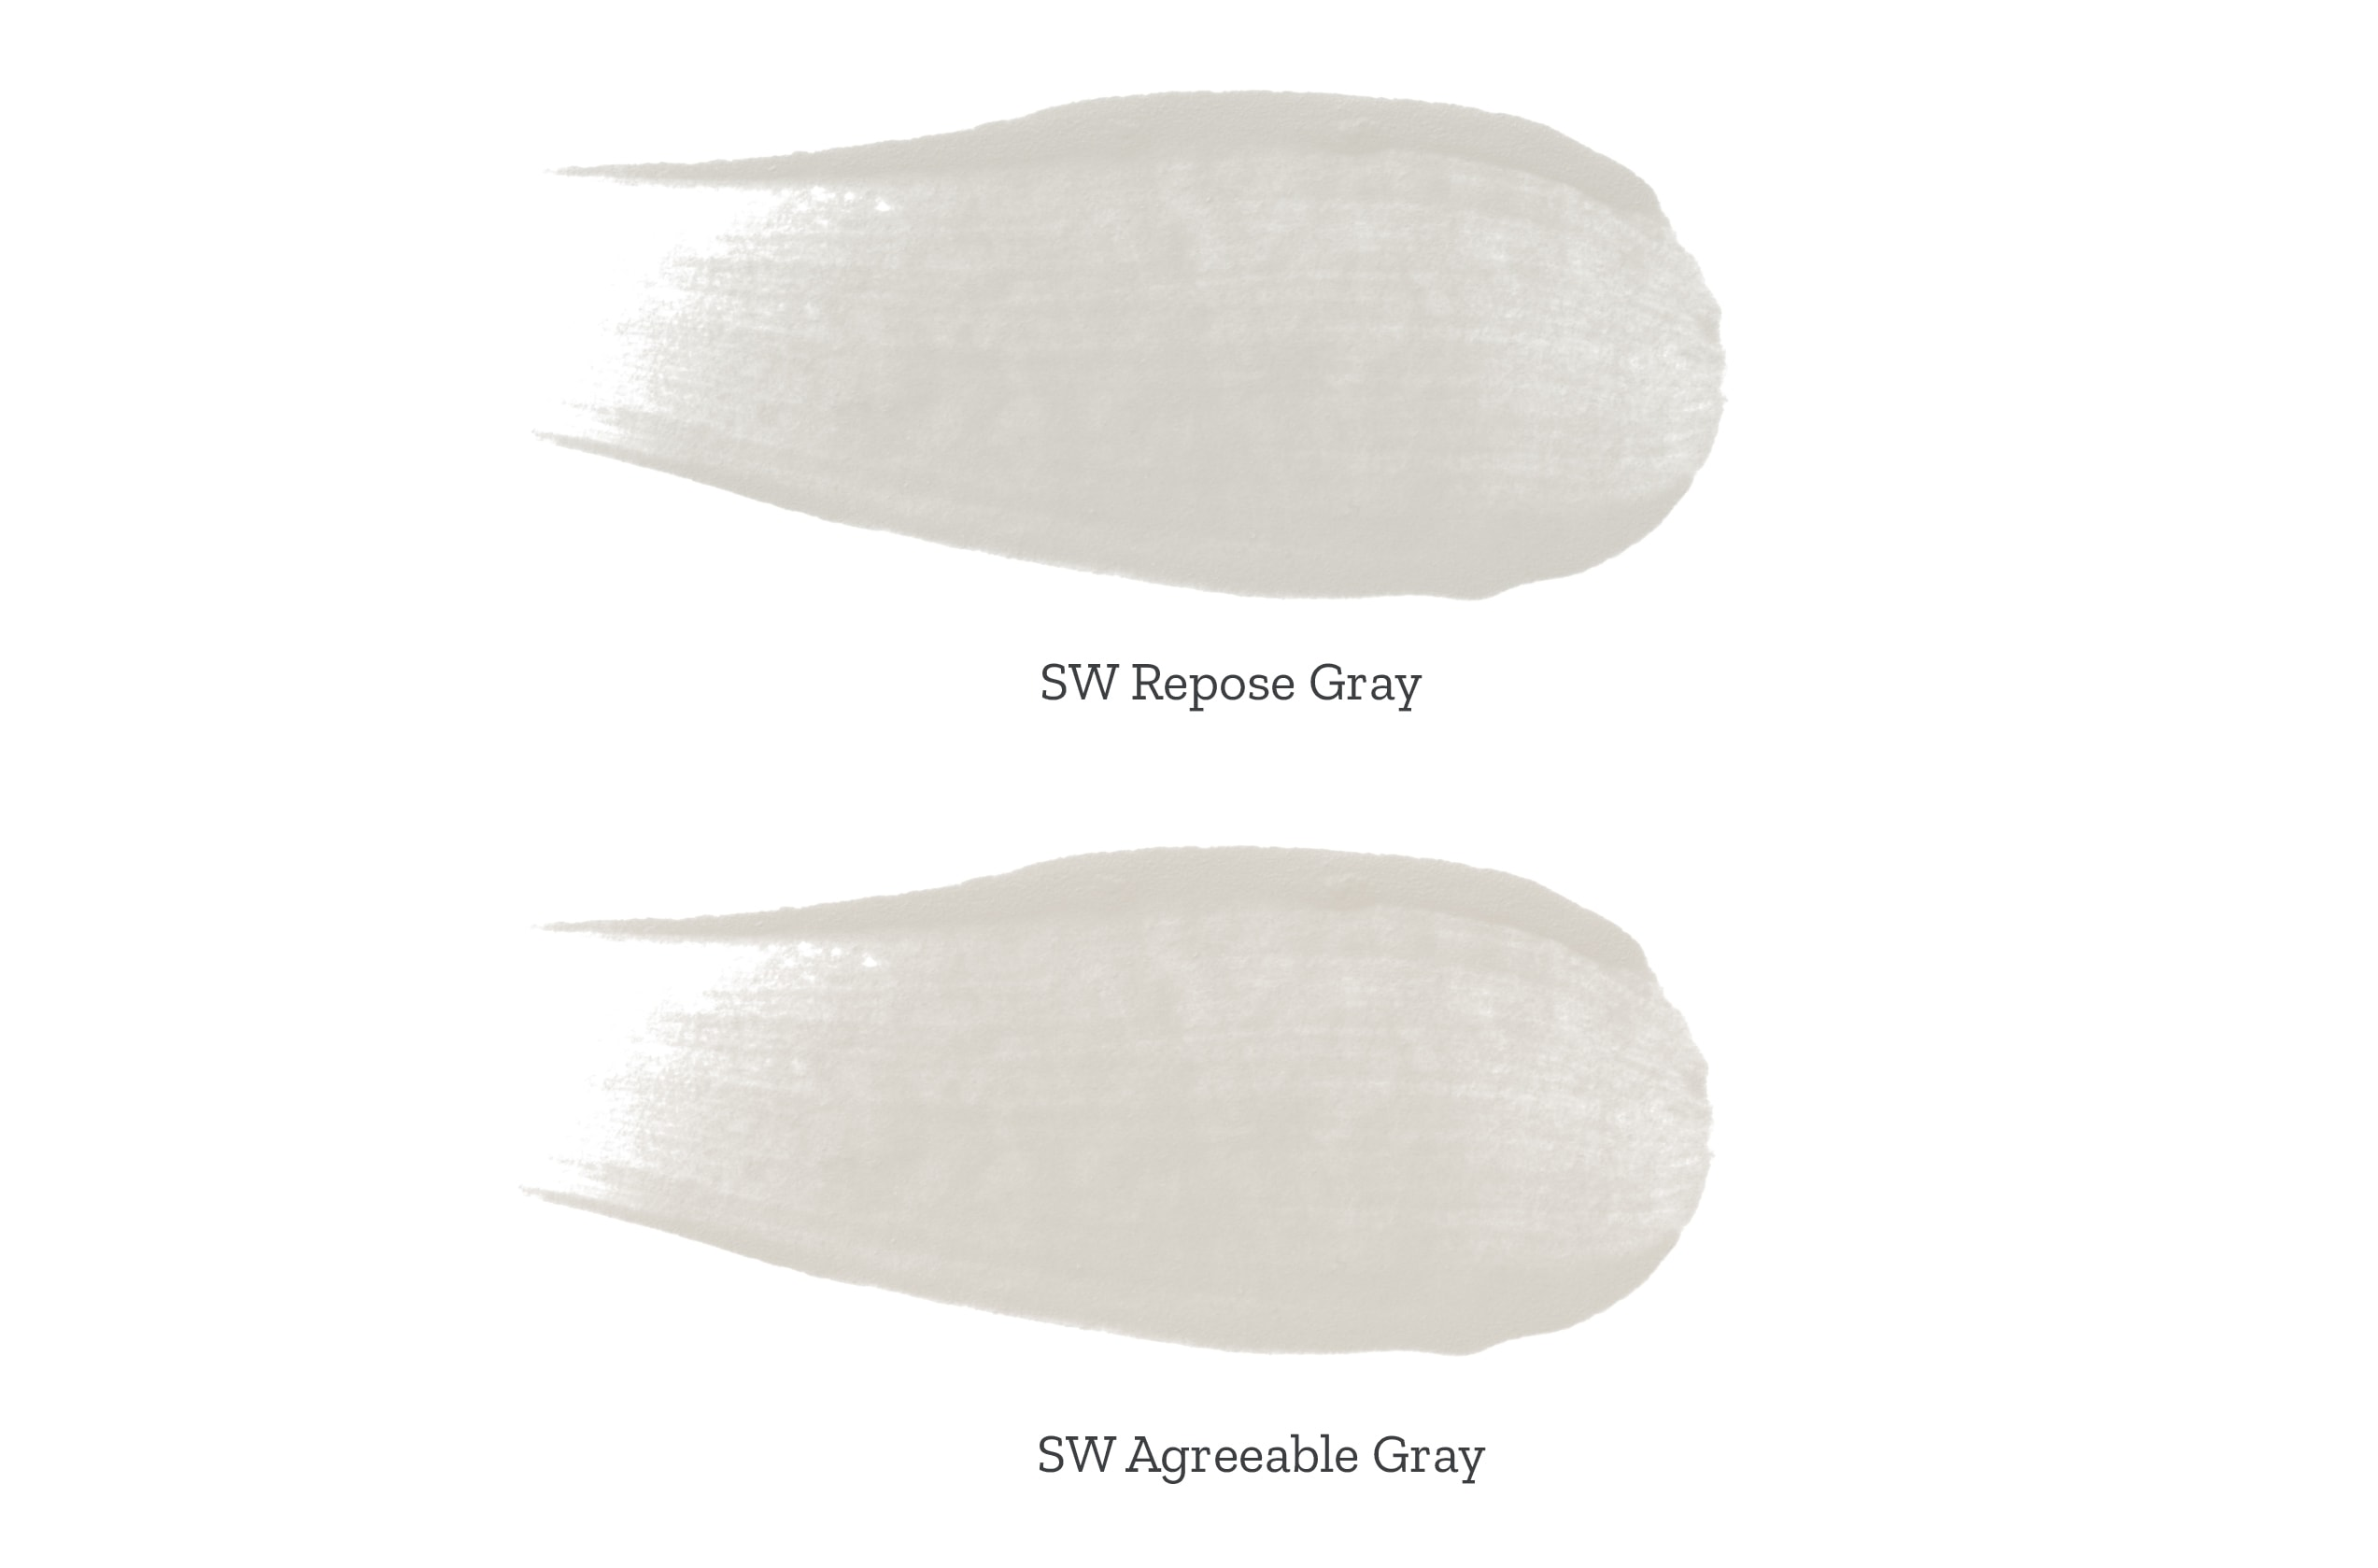 repose gray vs agreeable gray, side by side